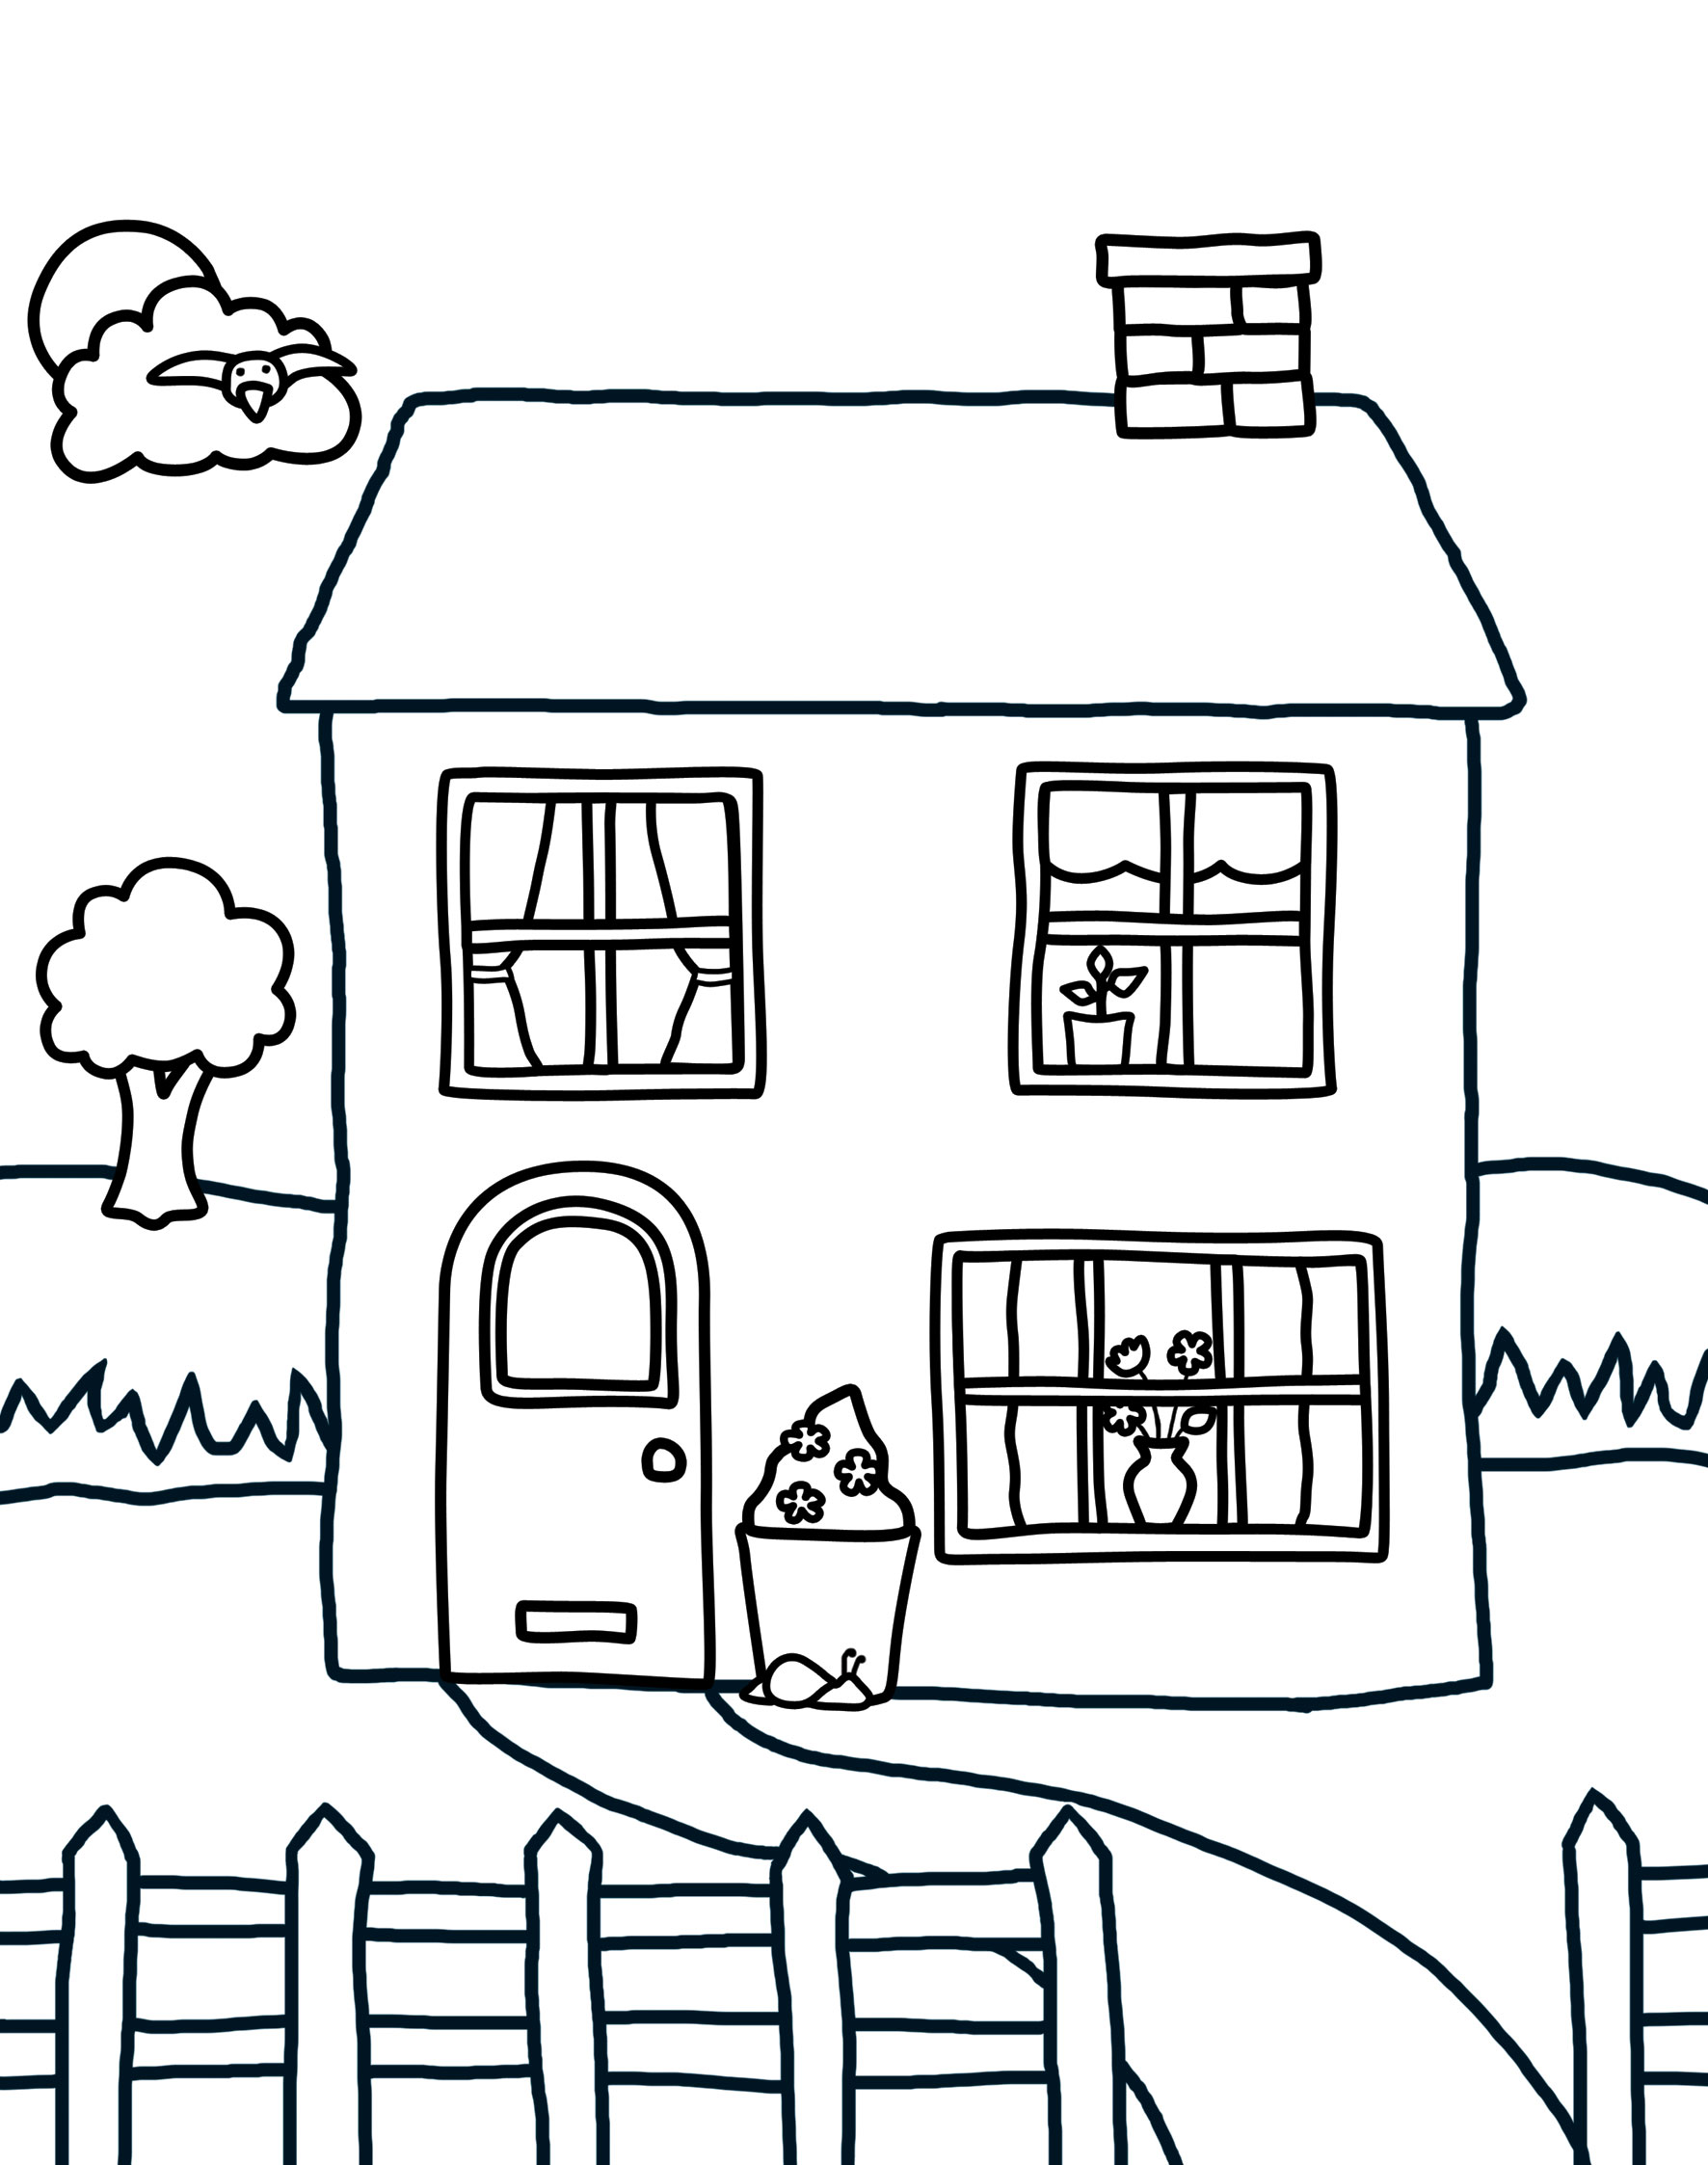 Download And Print Colouring At Home Priddy Books - Colouring-the-pictures